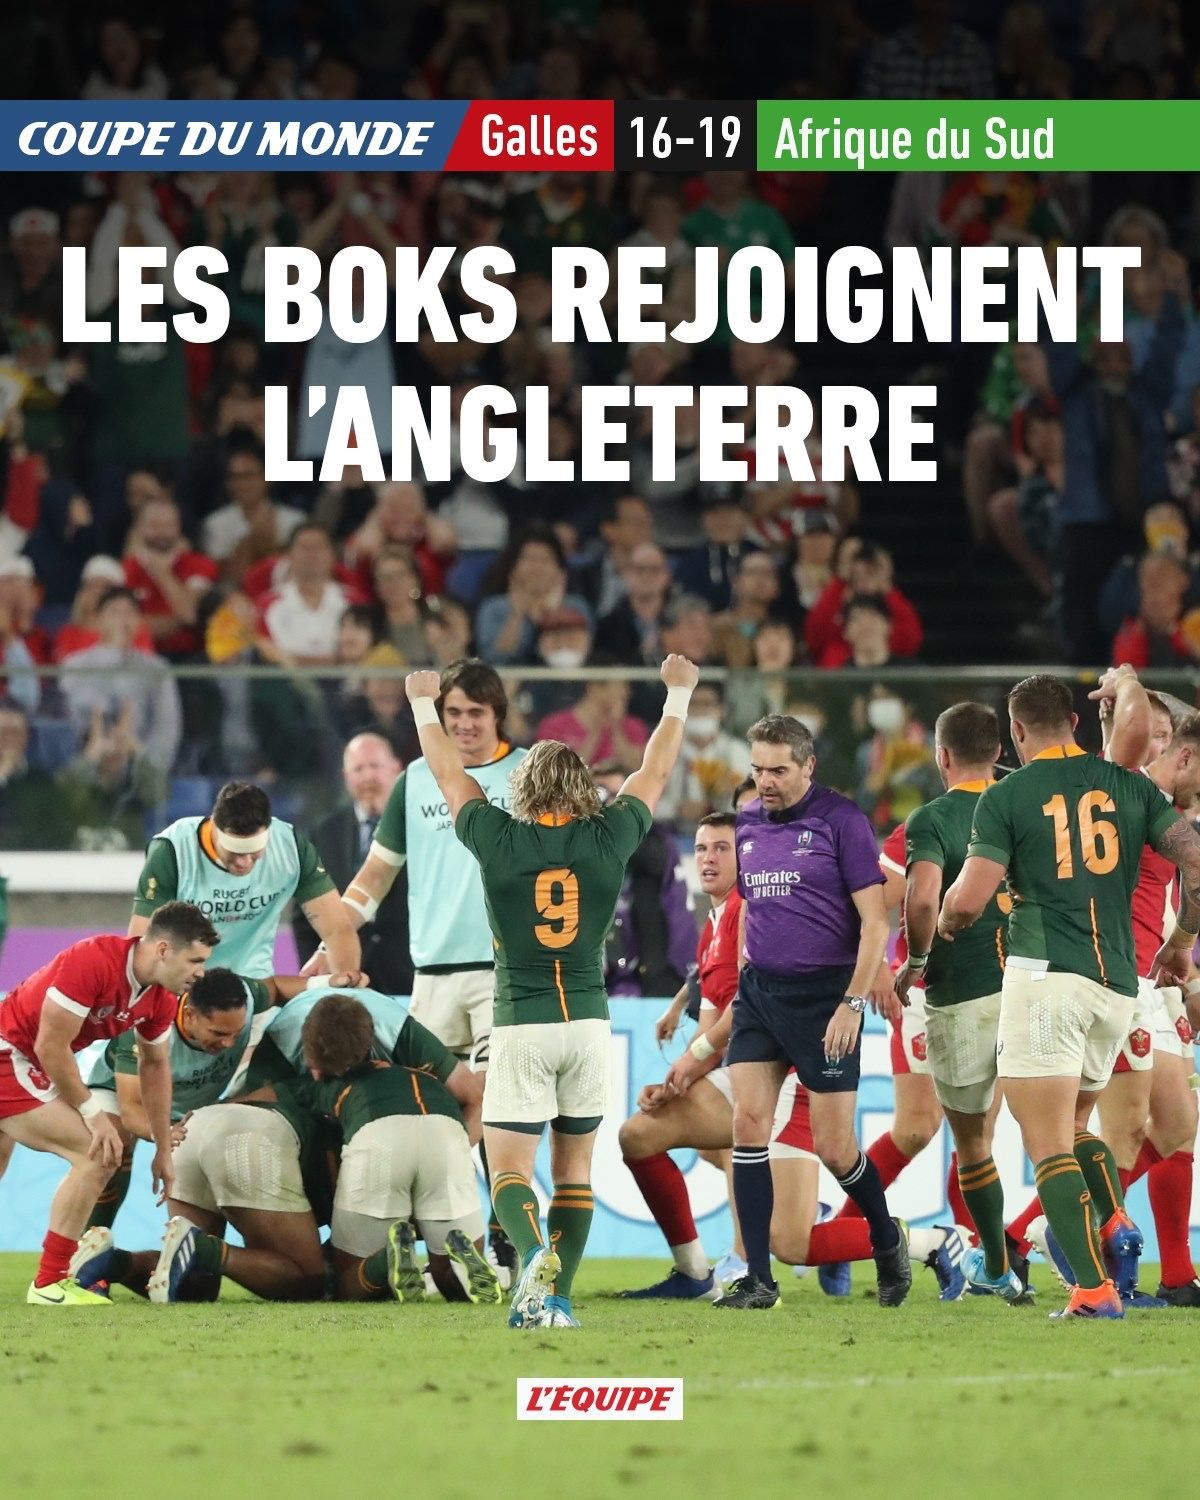 Rugby Rwc2019 Rugbyworldcup Southafrica Wales Semifinal Coupe Du Monde Afrique Du Sud Afrique